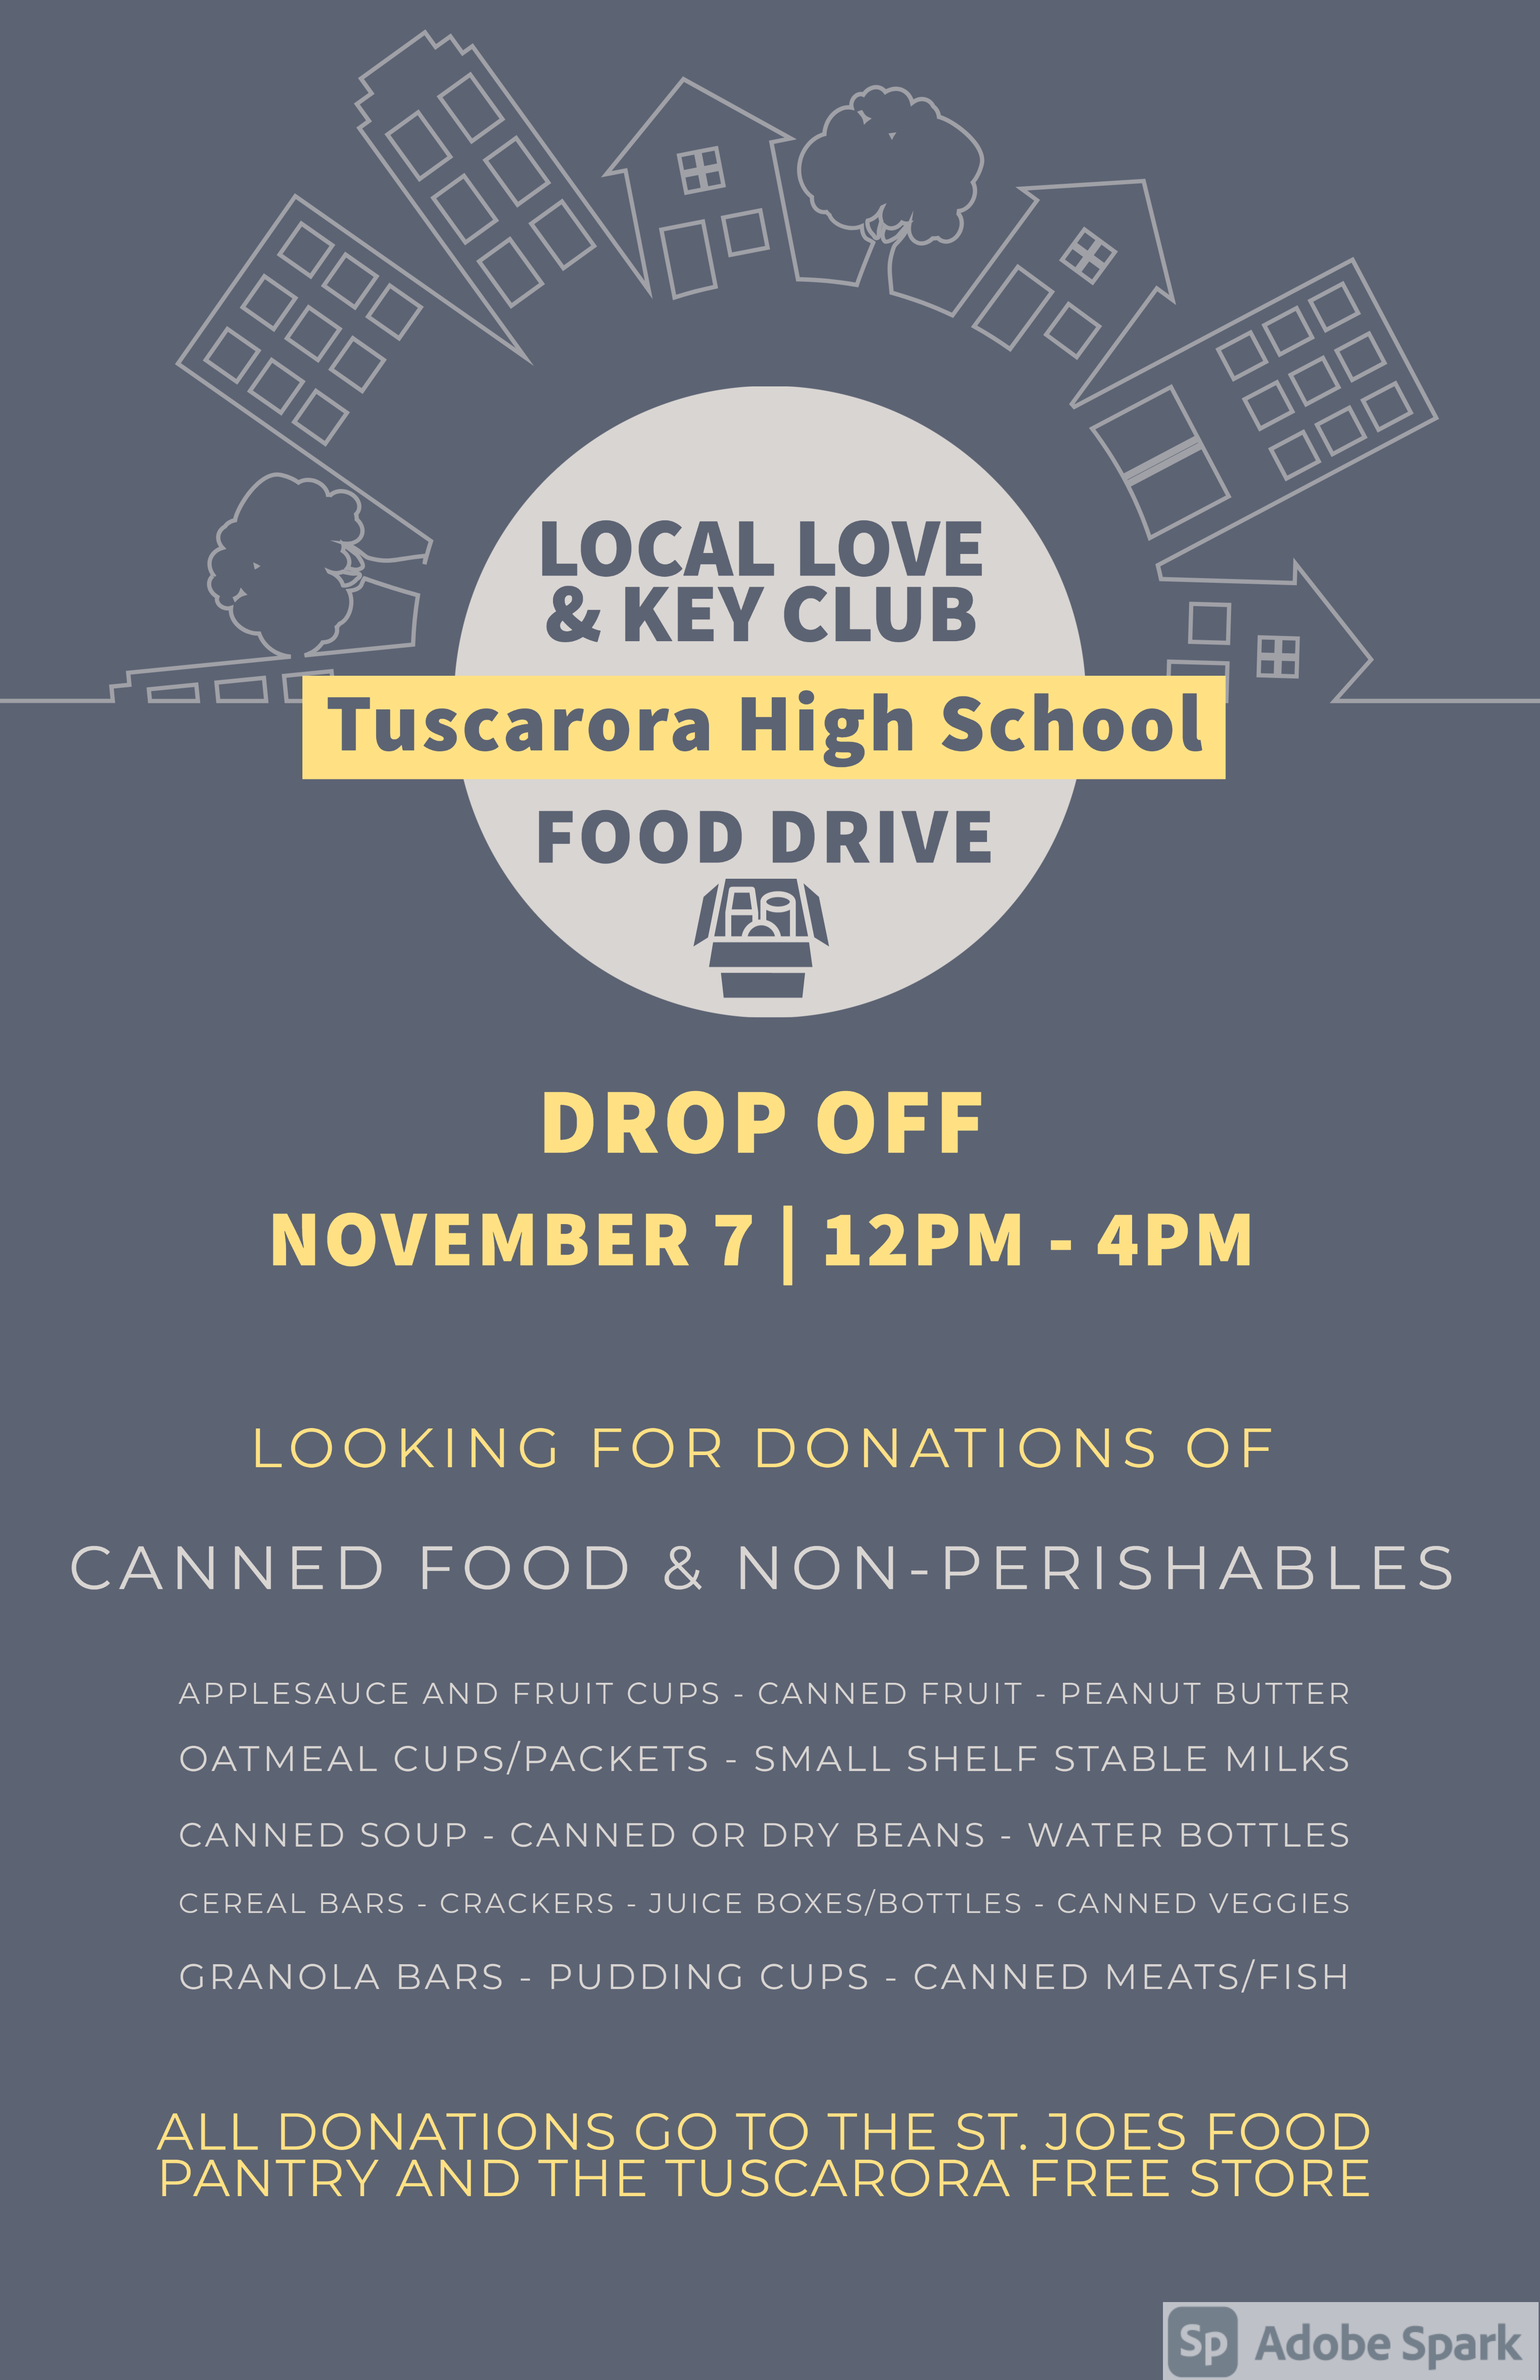 THS Food Drive Saturday November 7 from 12 PM - 4 PM